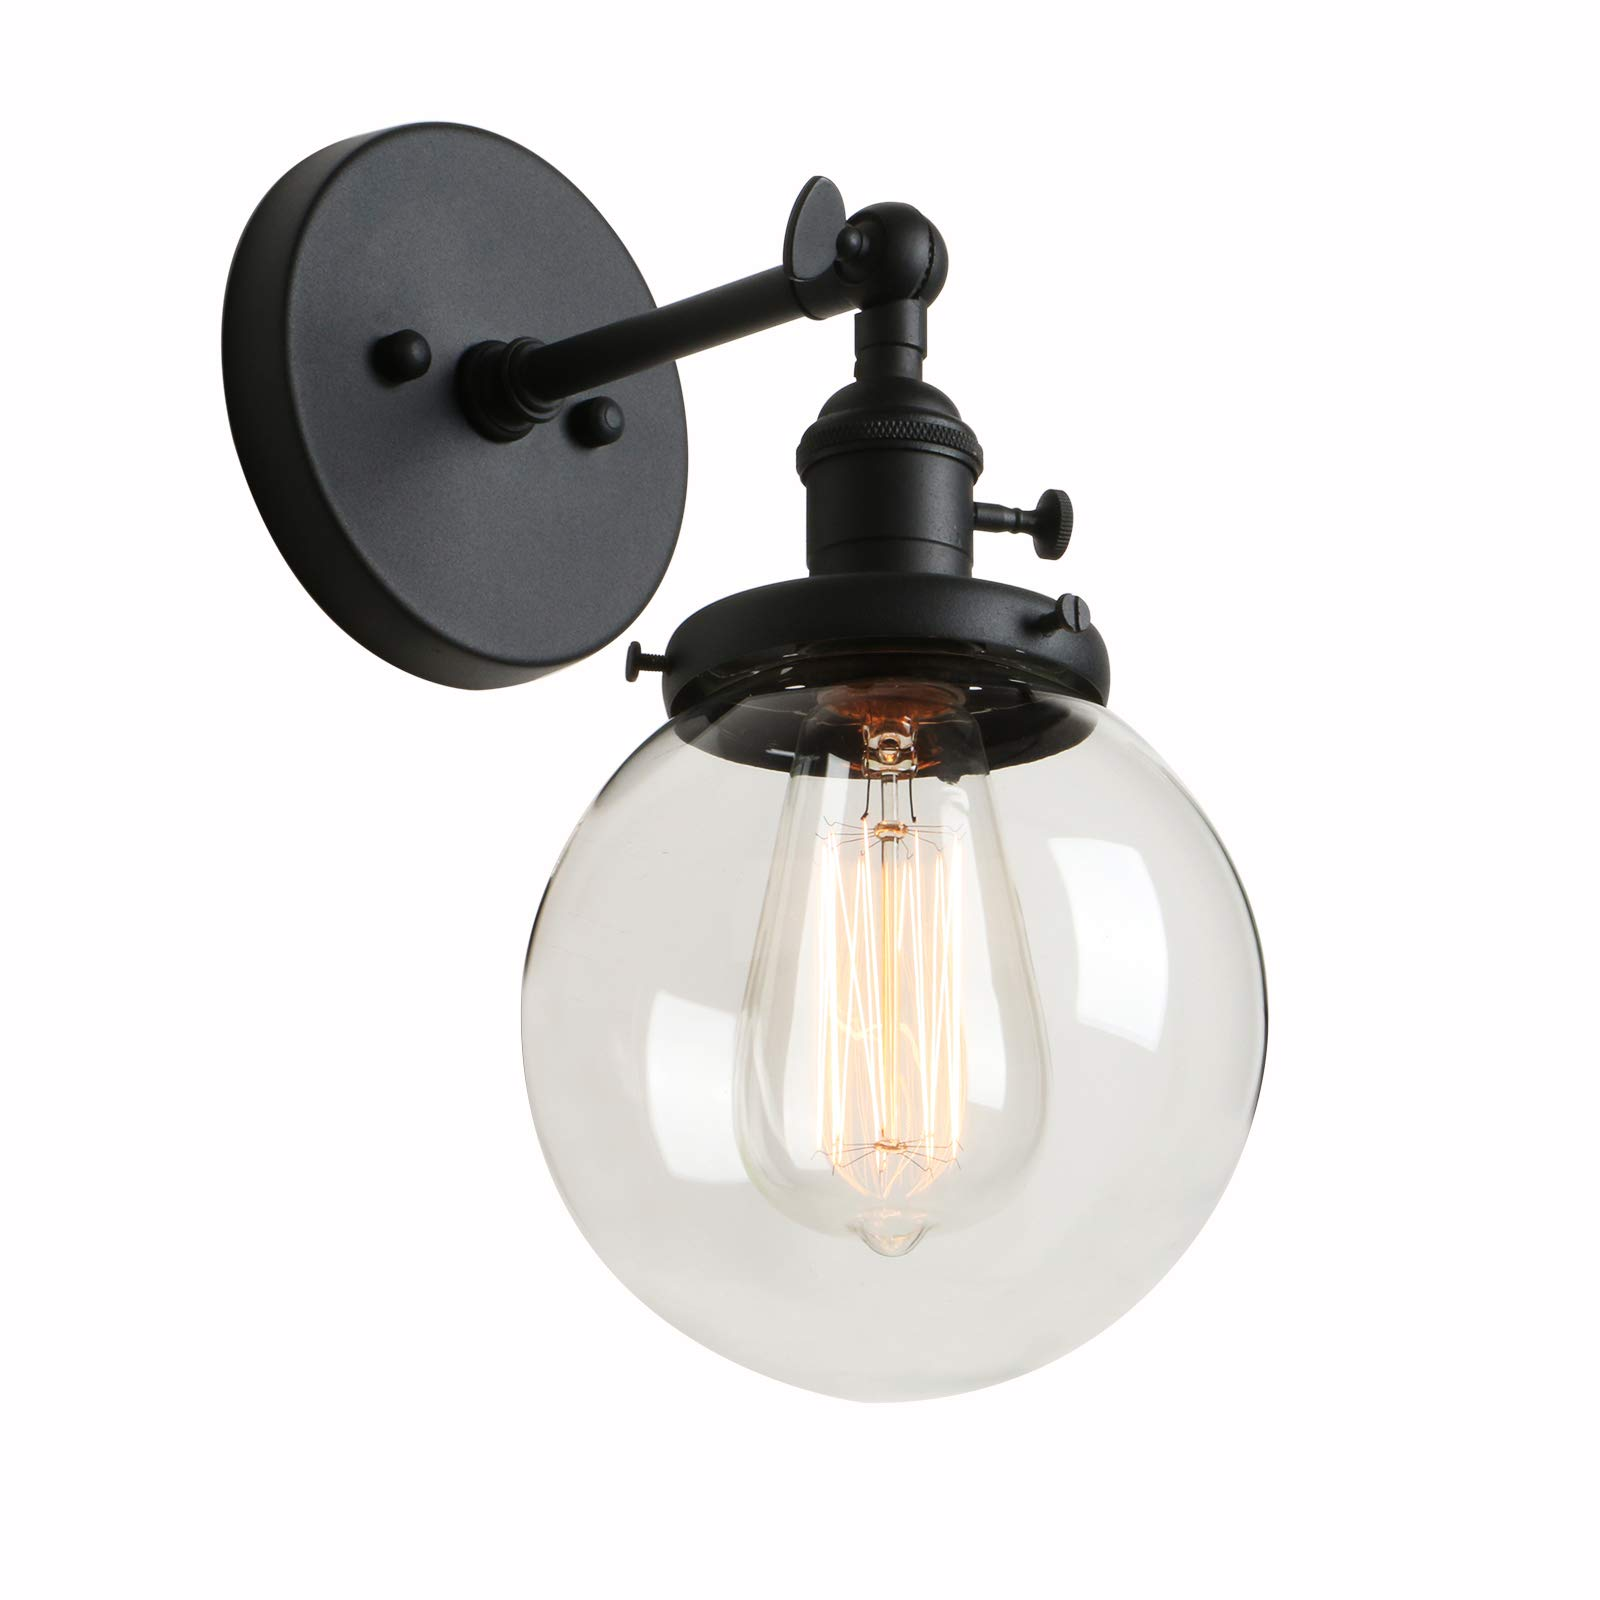 """Phansthy Industrial Sconce Light Vintage Wall Light Fixture with 5.9"""" Round Clear Glass Canopy for Loft, Kitchen, Dining Room Decoration and Lighting by Phansthy"""